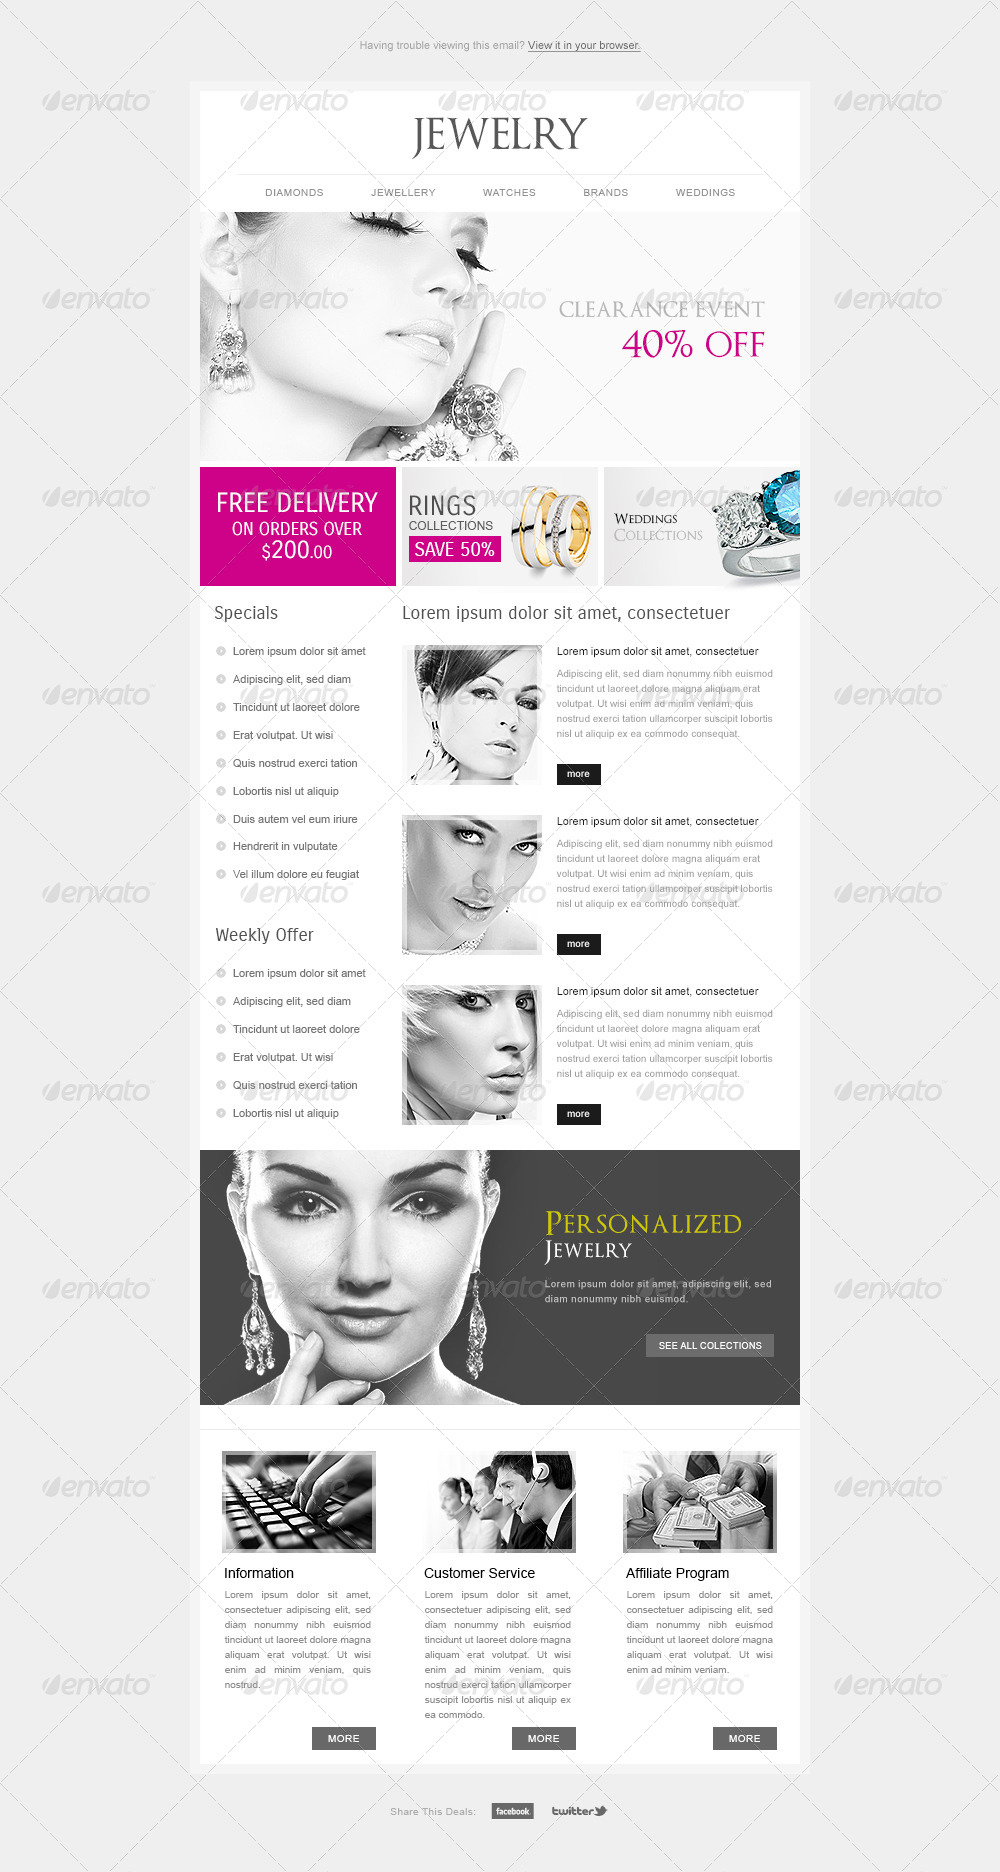 Minimal Clean Premium Email Template By HyperPix GraphicRiver - Minimal email template